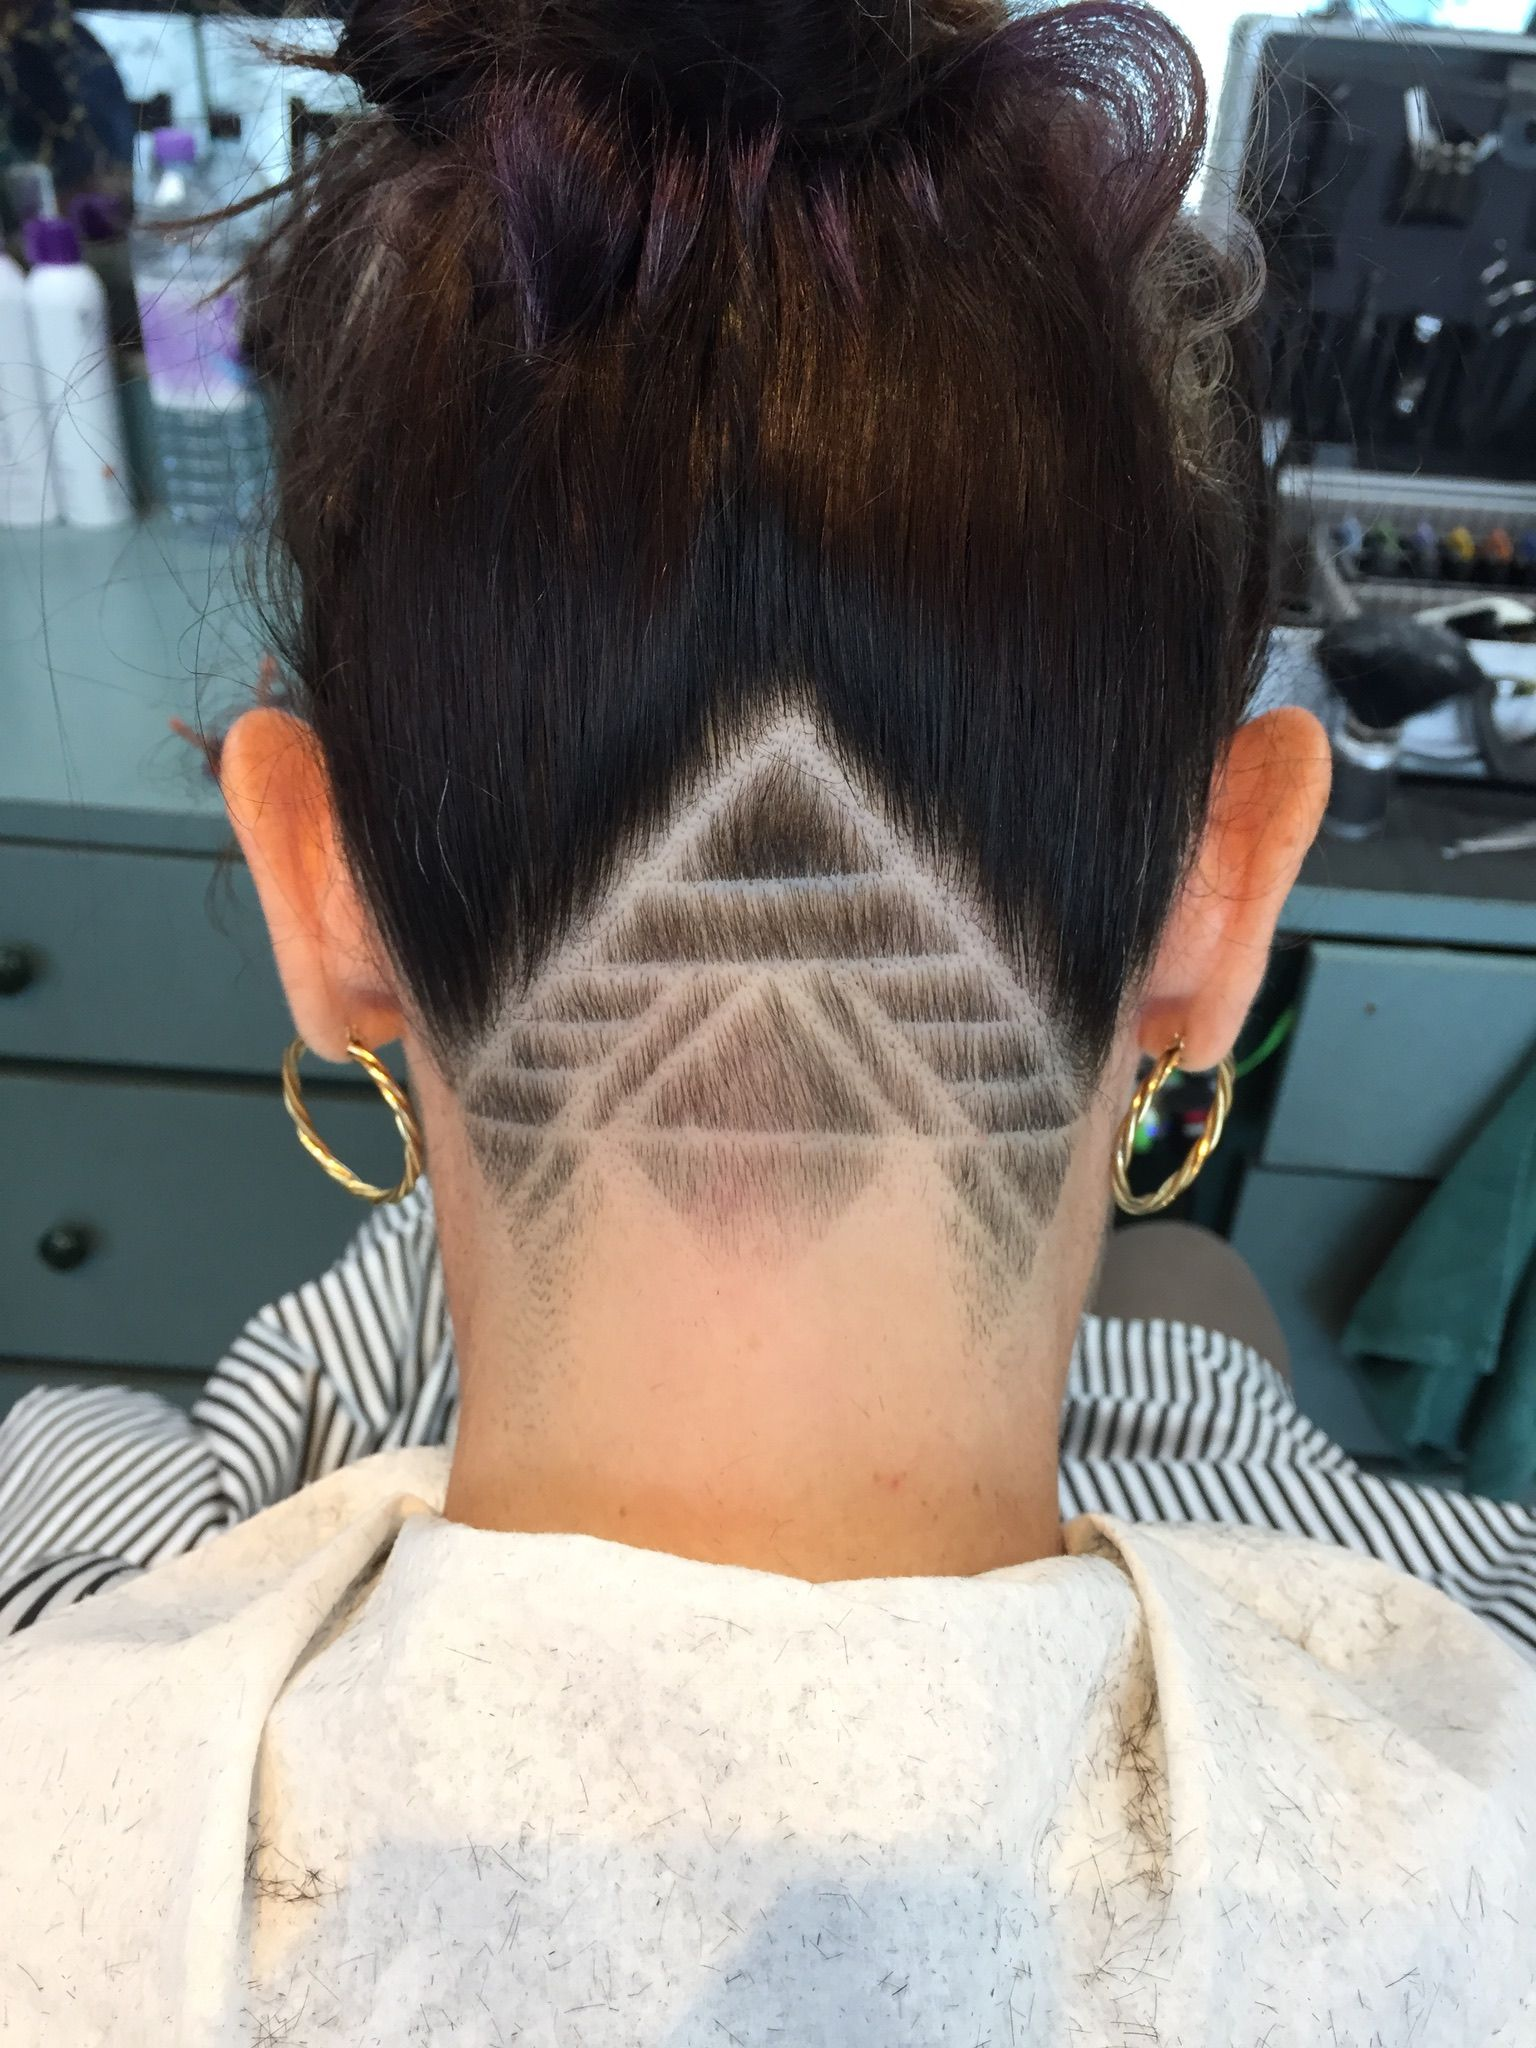 Undercut done by Anthony at Dodds!!